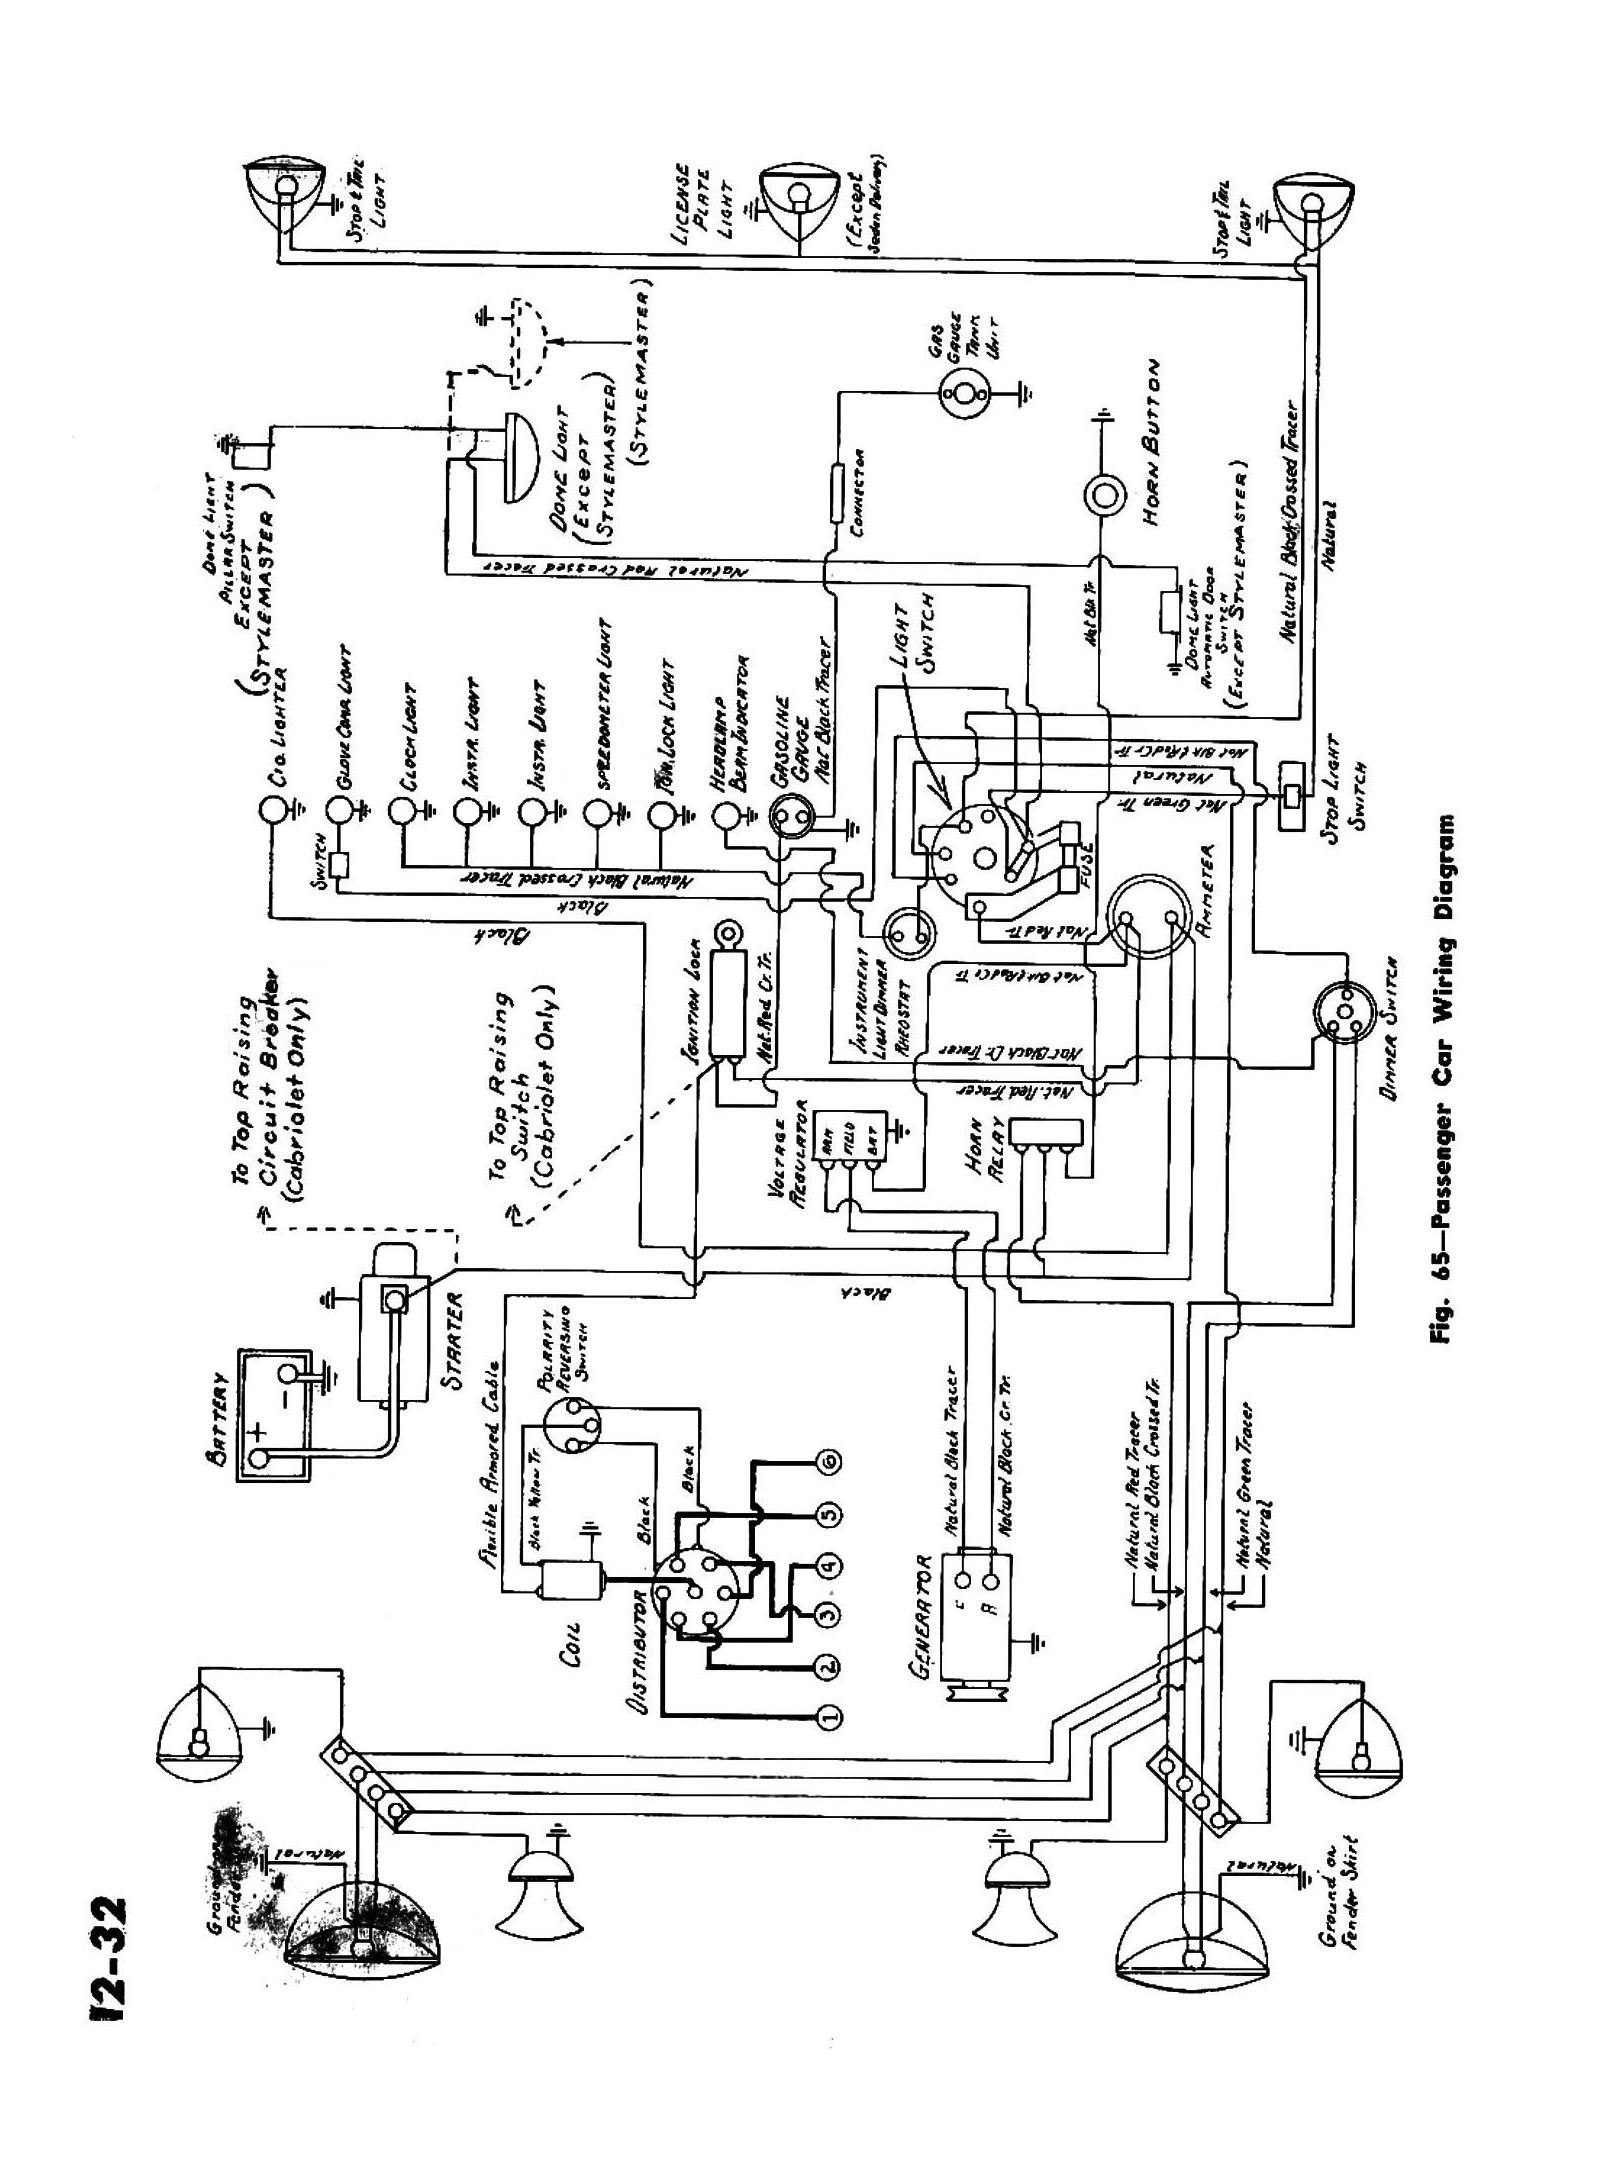 Chevy Wiring Diagrams Gm Choke Heater Diagram 1945 Passenger Car